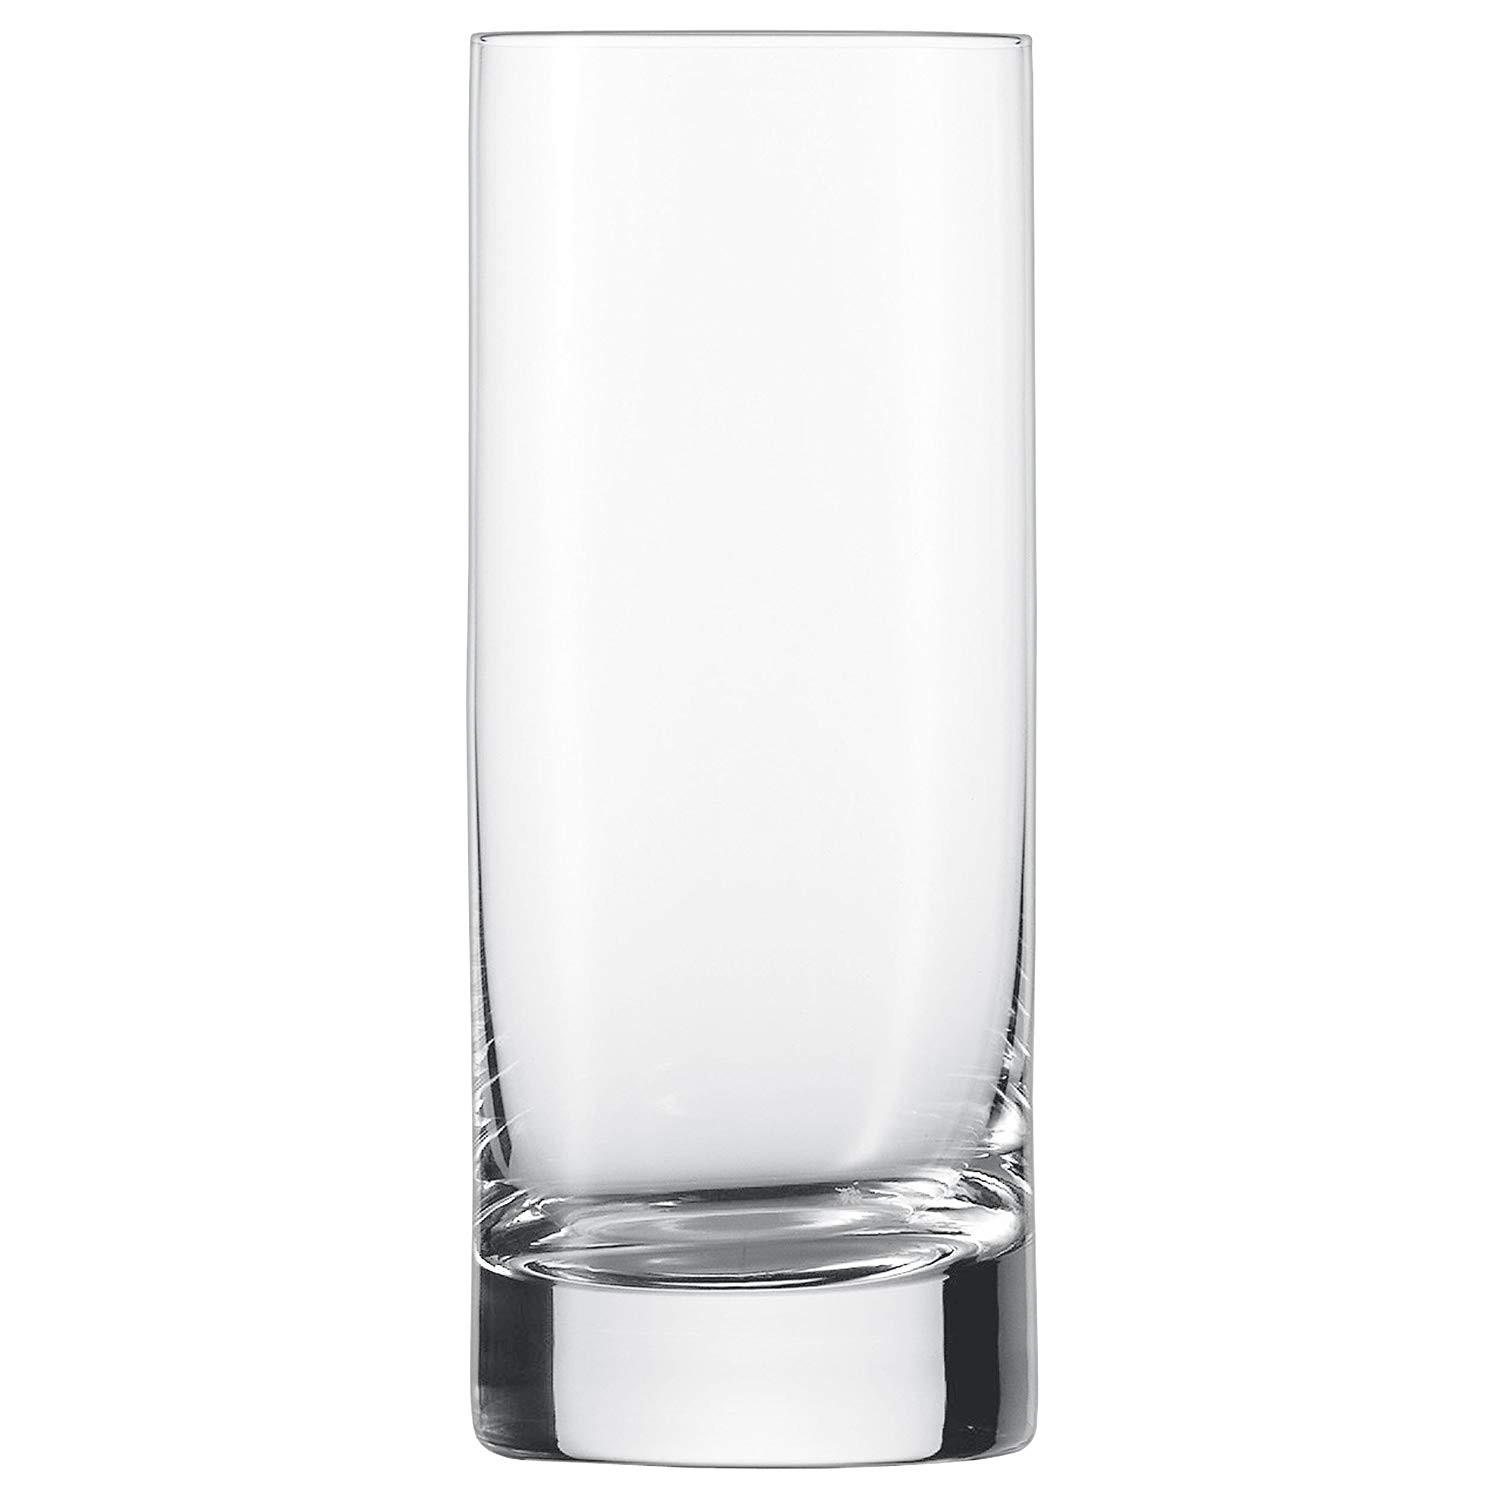 24 inch cylinder vases bulk of amazon com schott zwiesel tritan crystal glass paris barware with amazon com schott zwiesel tritan crystal glass paris barware collection collins long drink cocktail glass 11 1 ounce set of 6 old fashioned glasses